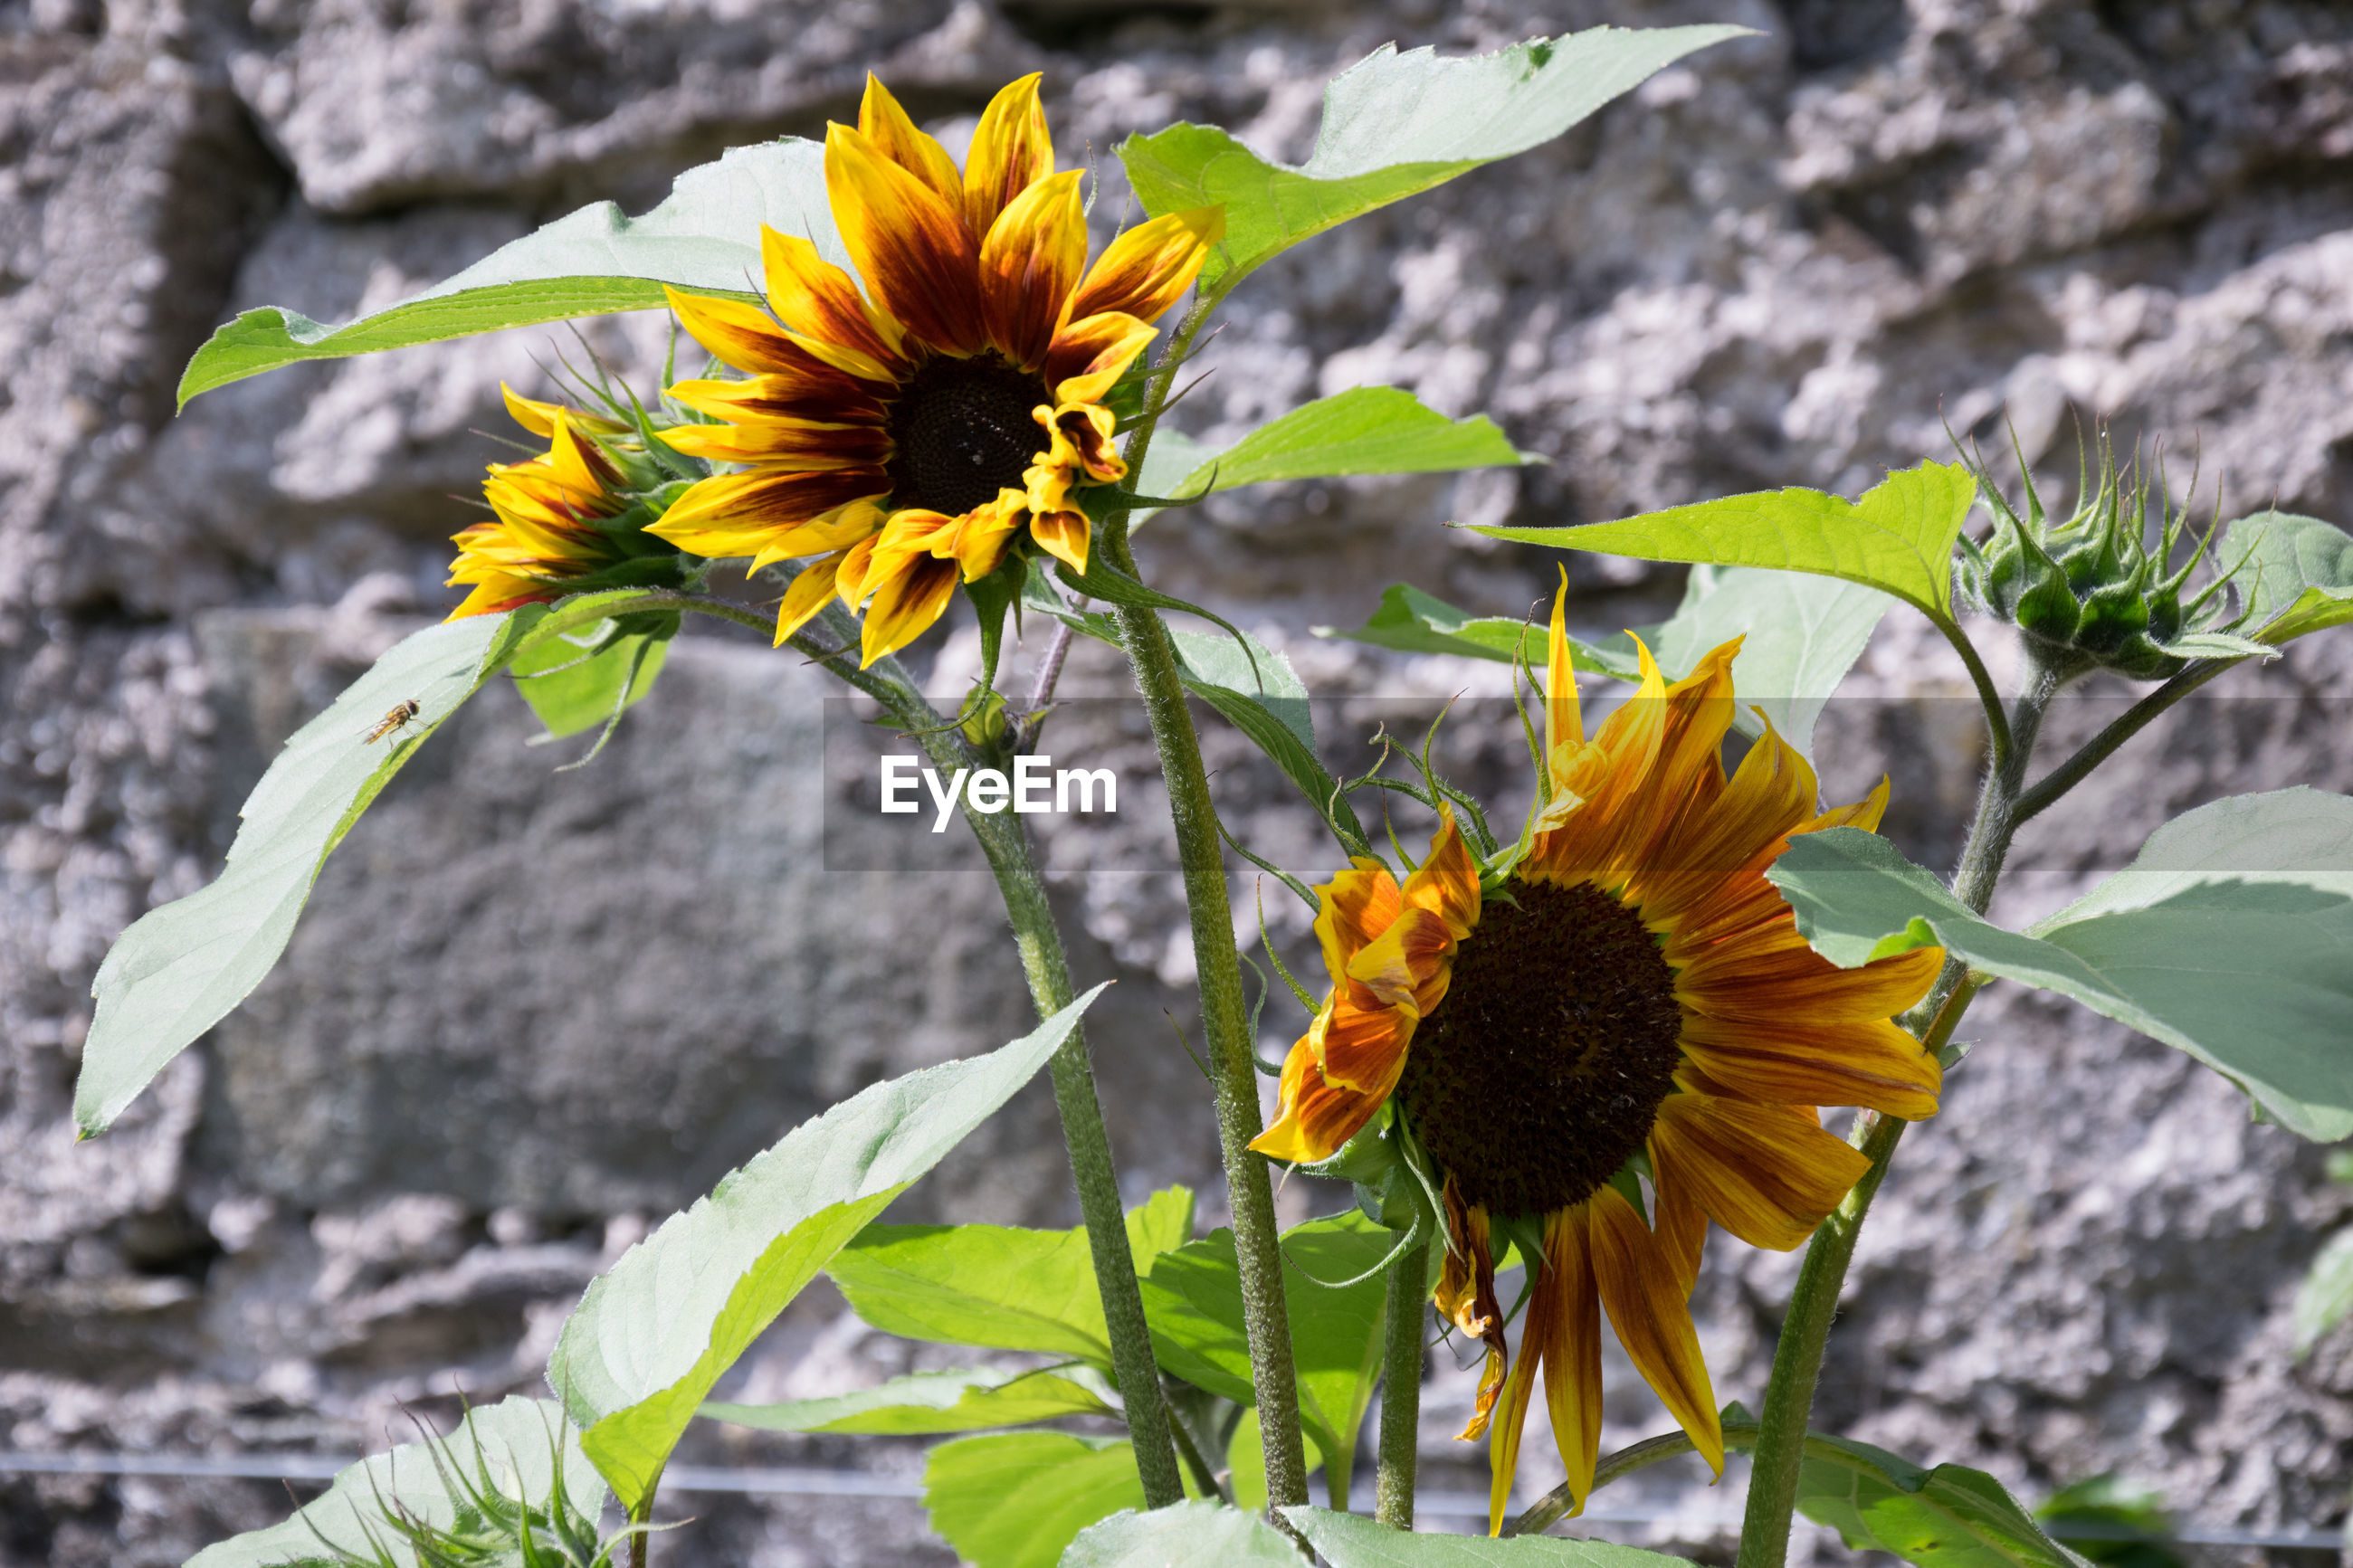 CLOSE-UP OF SUNFLOWER BLOOMING IN PARK